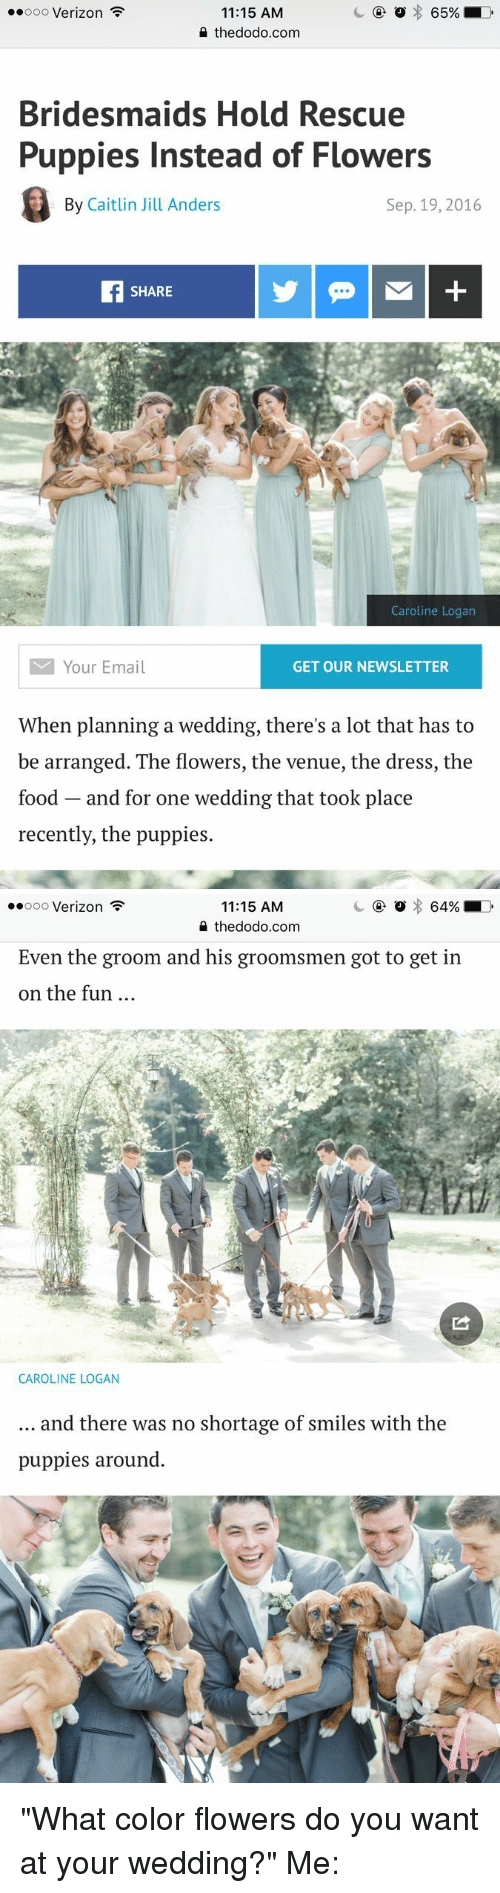 "Groomsmen: 65%  ooooo Verizon  11:15 AM  the dodo.com  Bridesmaids Hold Rescue  Puppies Instead of Flowers  By Caitlin Jill Anders  Sep. 19, 2016  SHARE  Caroline Logan  M Your Email  GET OUR NEWSLETTER  When planning a wedding, there's a lot that has to  be arranged. The flowers, the venue, the dress, the  food and for one wedding that took place  recently, the puppies.   64% LD  ooooo Verizon  11:15 AM  the dodo.com  Even the groom and his groomsmen got to get in  on the fun  CAROLINE LOGAN  and there was no shortage of smiles with the  puppies around ""What color flowers do you want at your wedding?"" Me:"